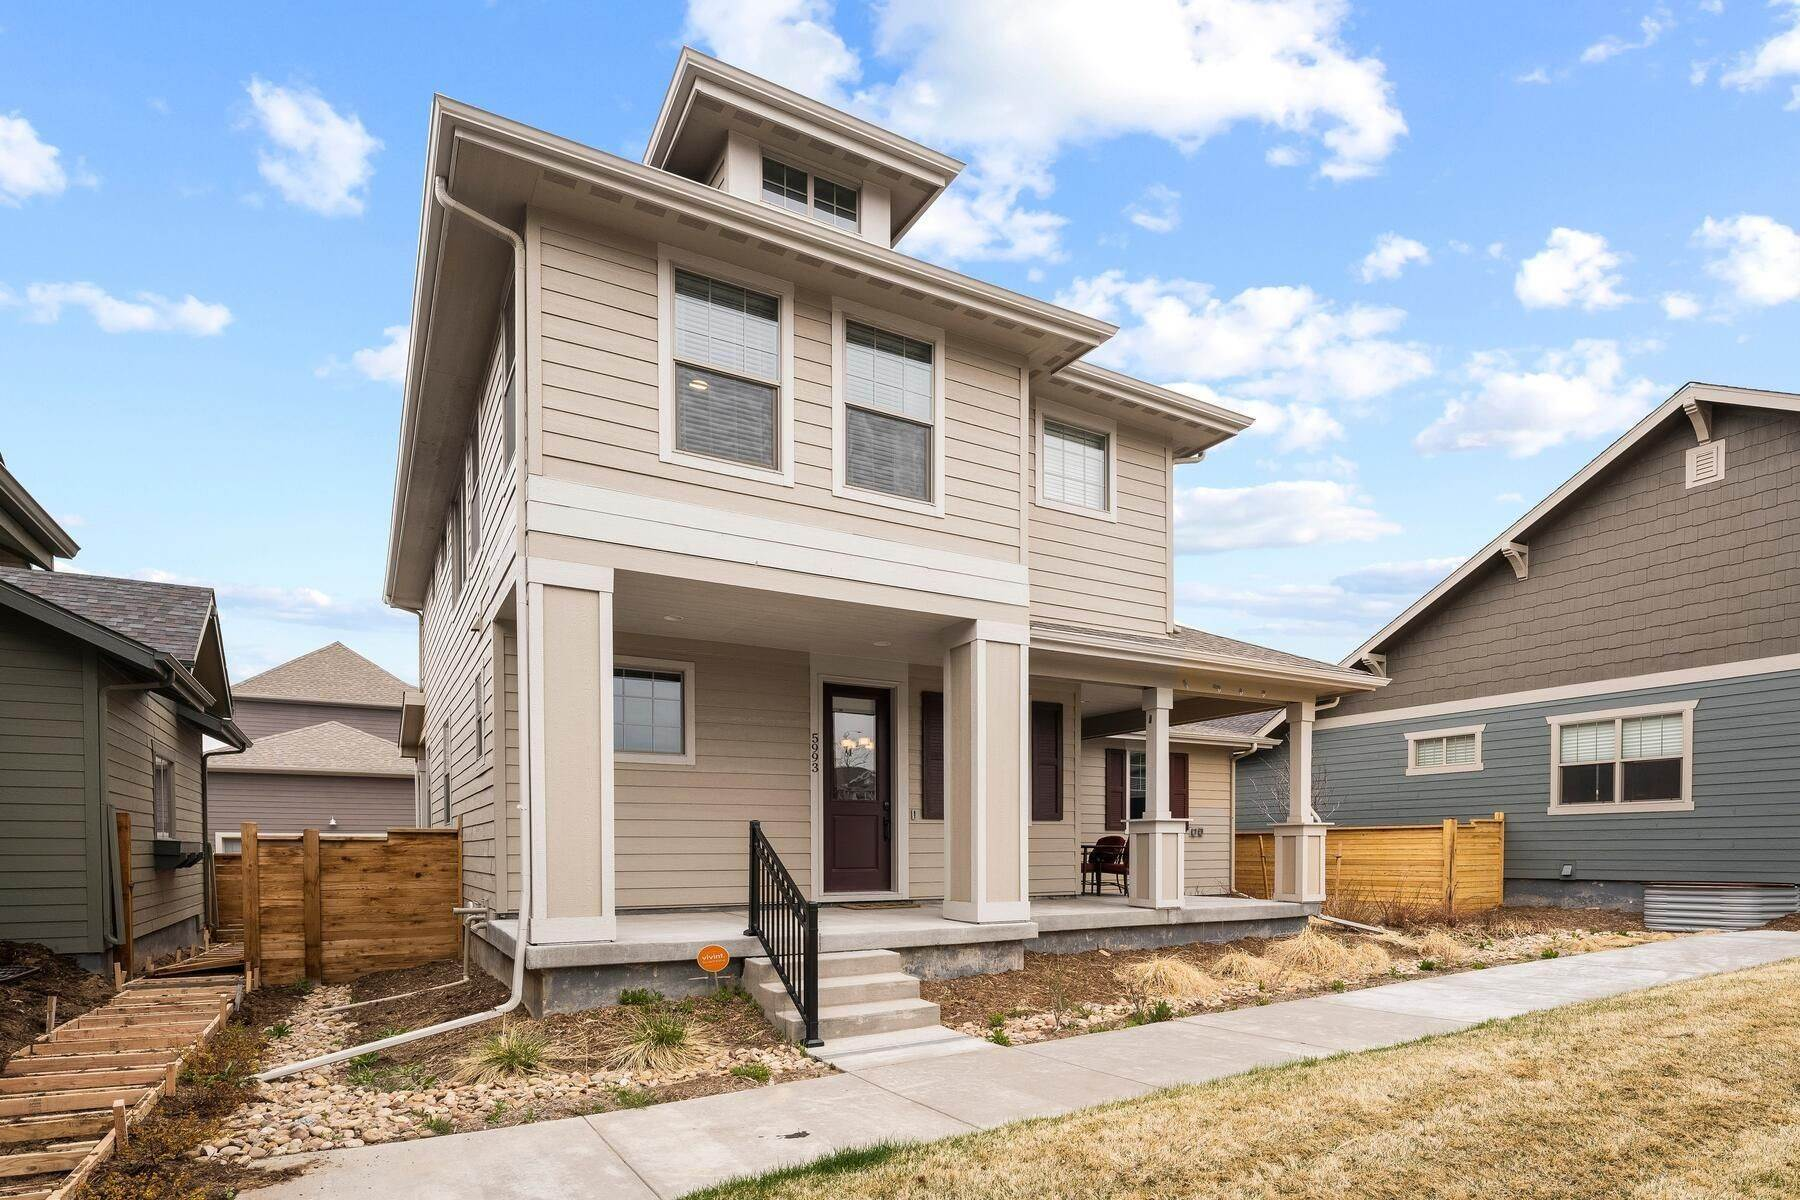 Single Family Homes for Sale at 5993 Florence Street, Denver, Co, 80238 5993 Florence Street Denver, Colorado 80238 United States